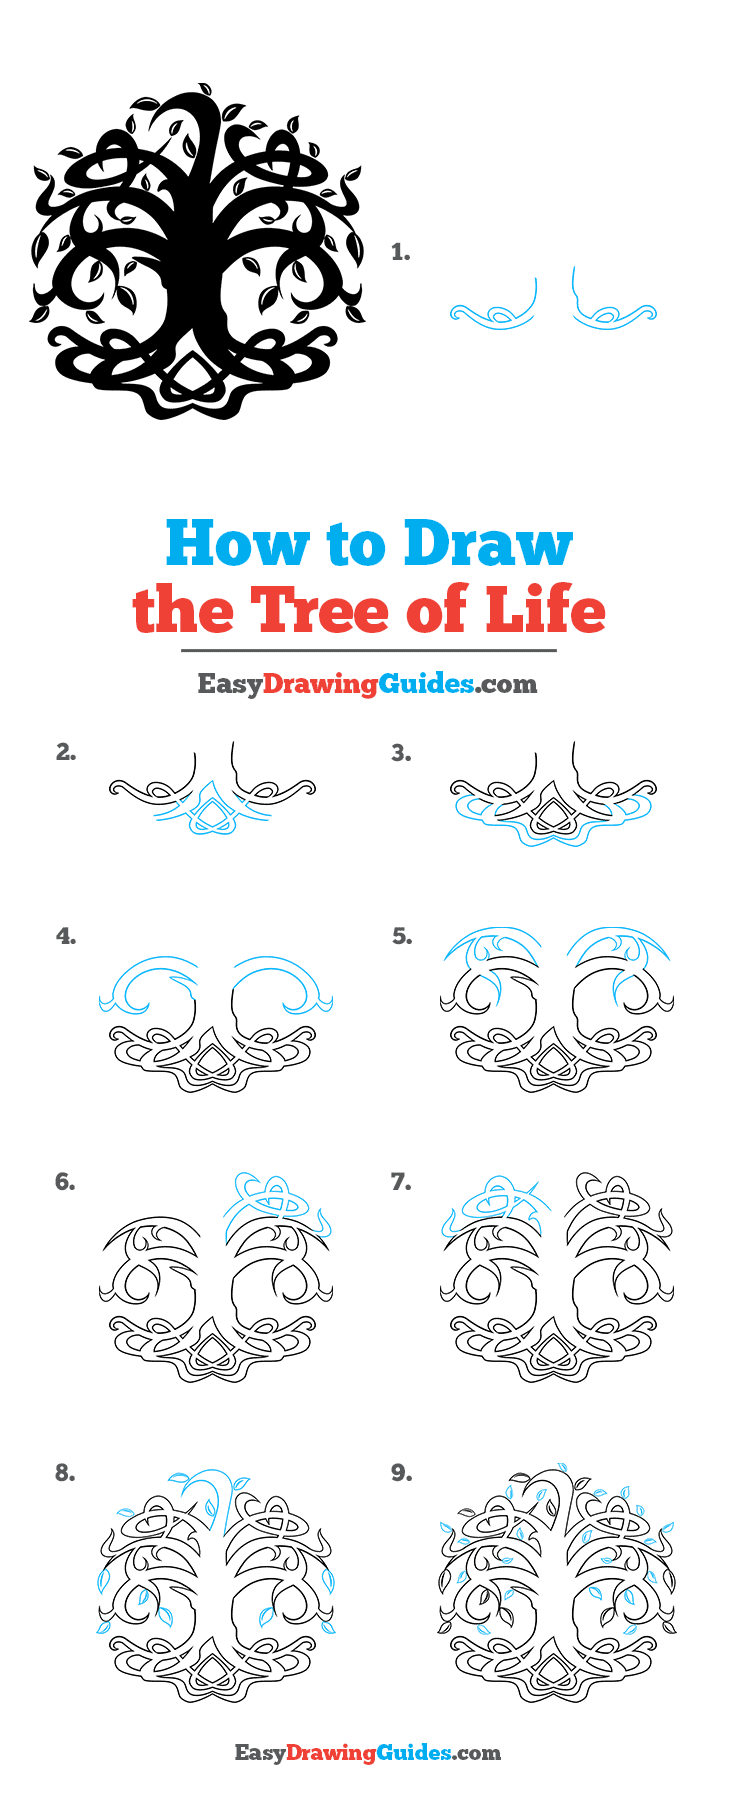 How to Draw Tree of Life